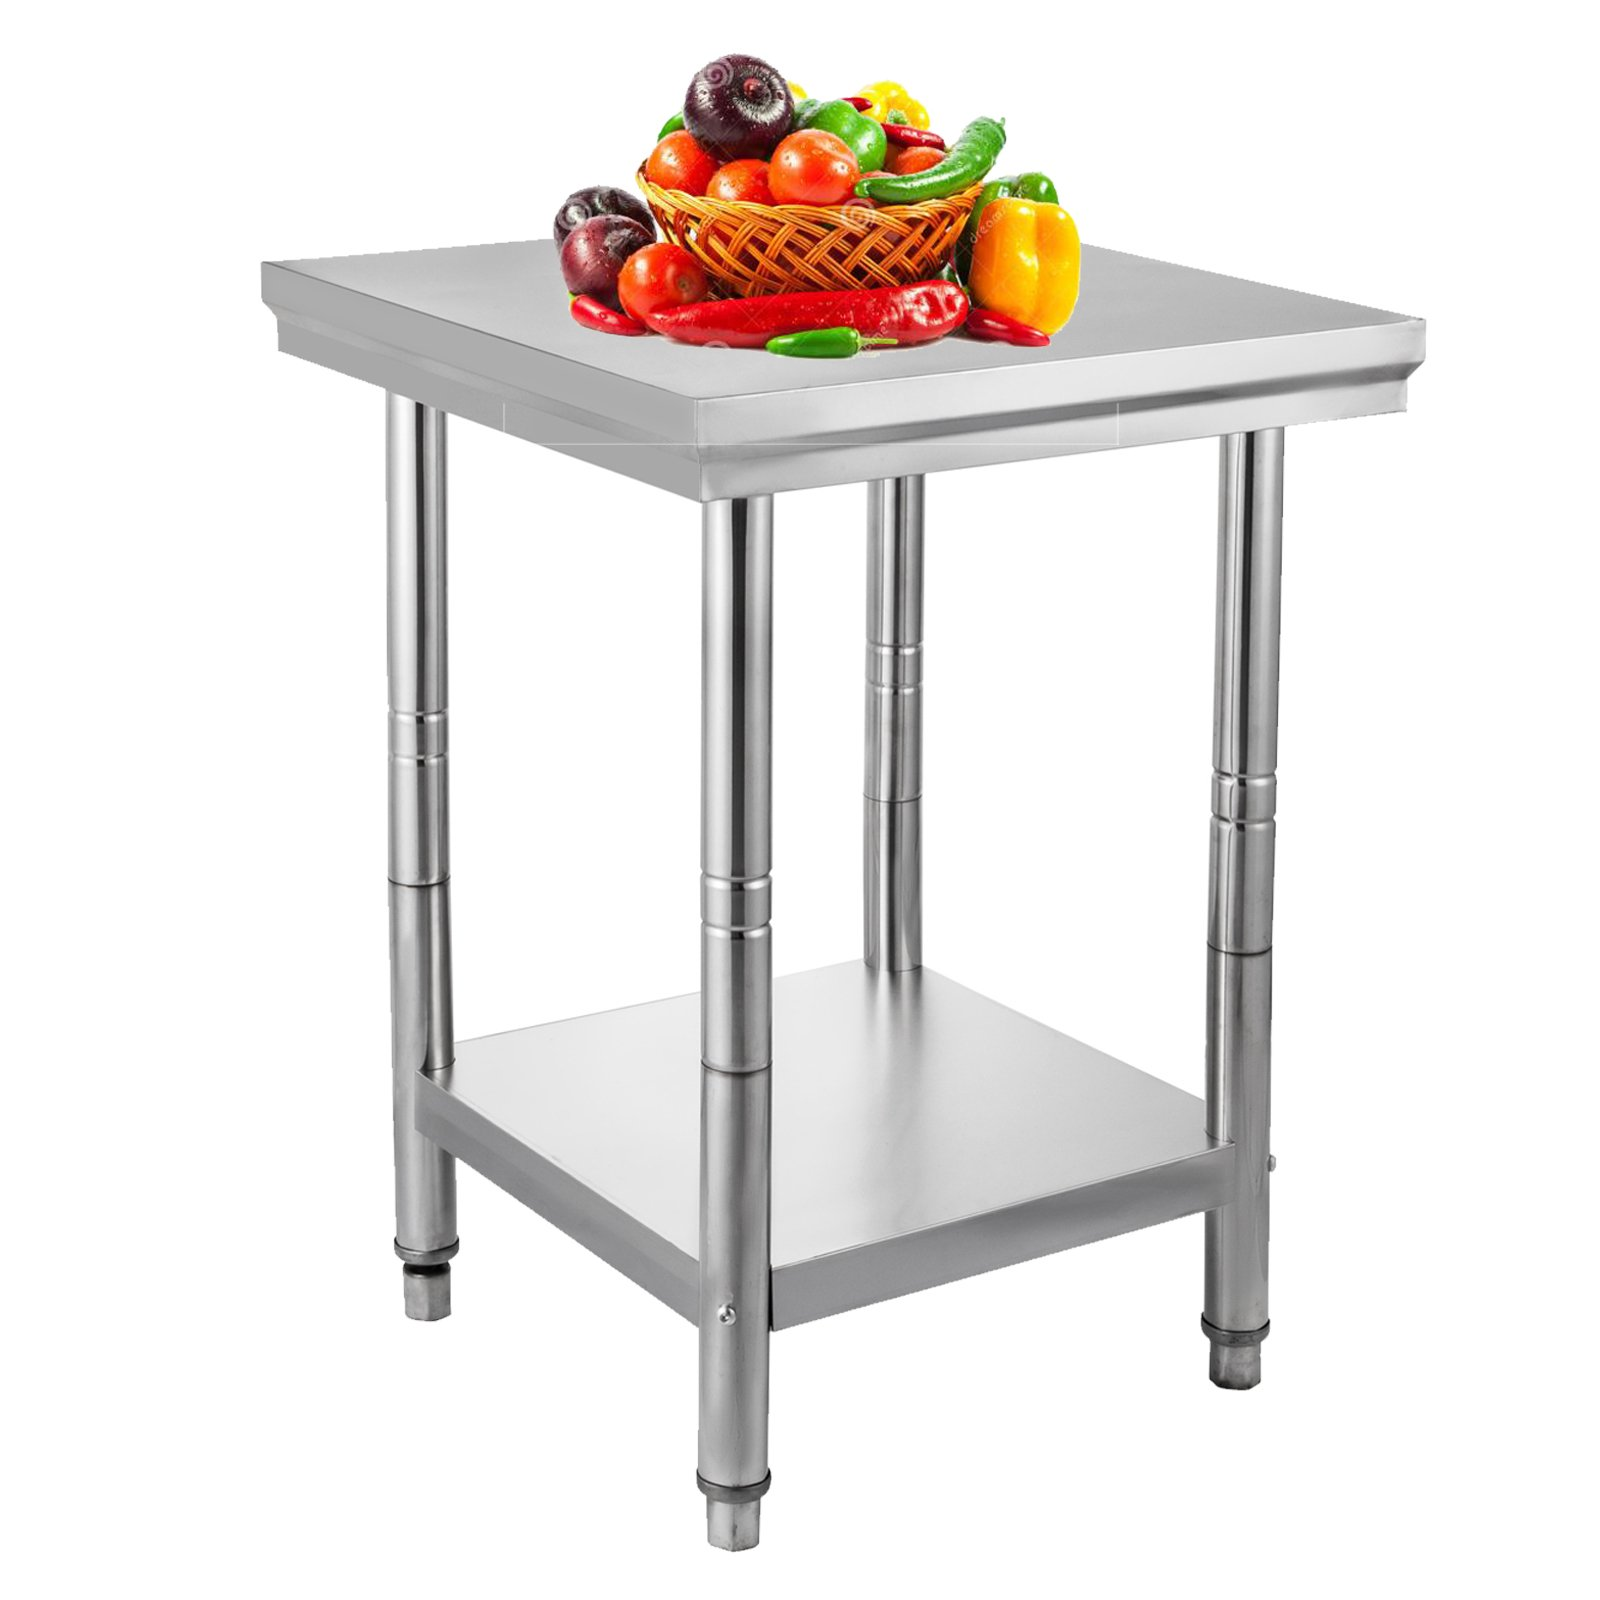 VEVOR NSF Stainless Steel Work Table Prep Work Table for Commercial Kitchen Restaurant (24x24x32 IN)